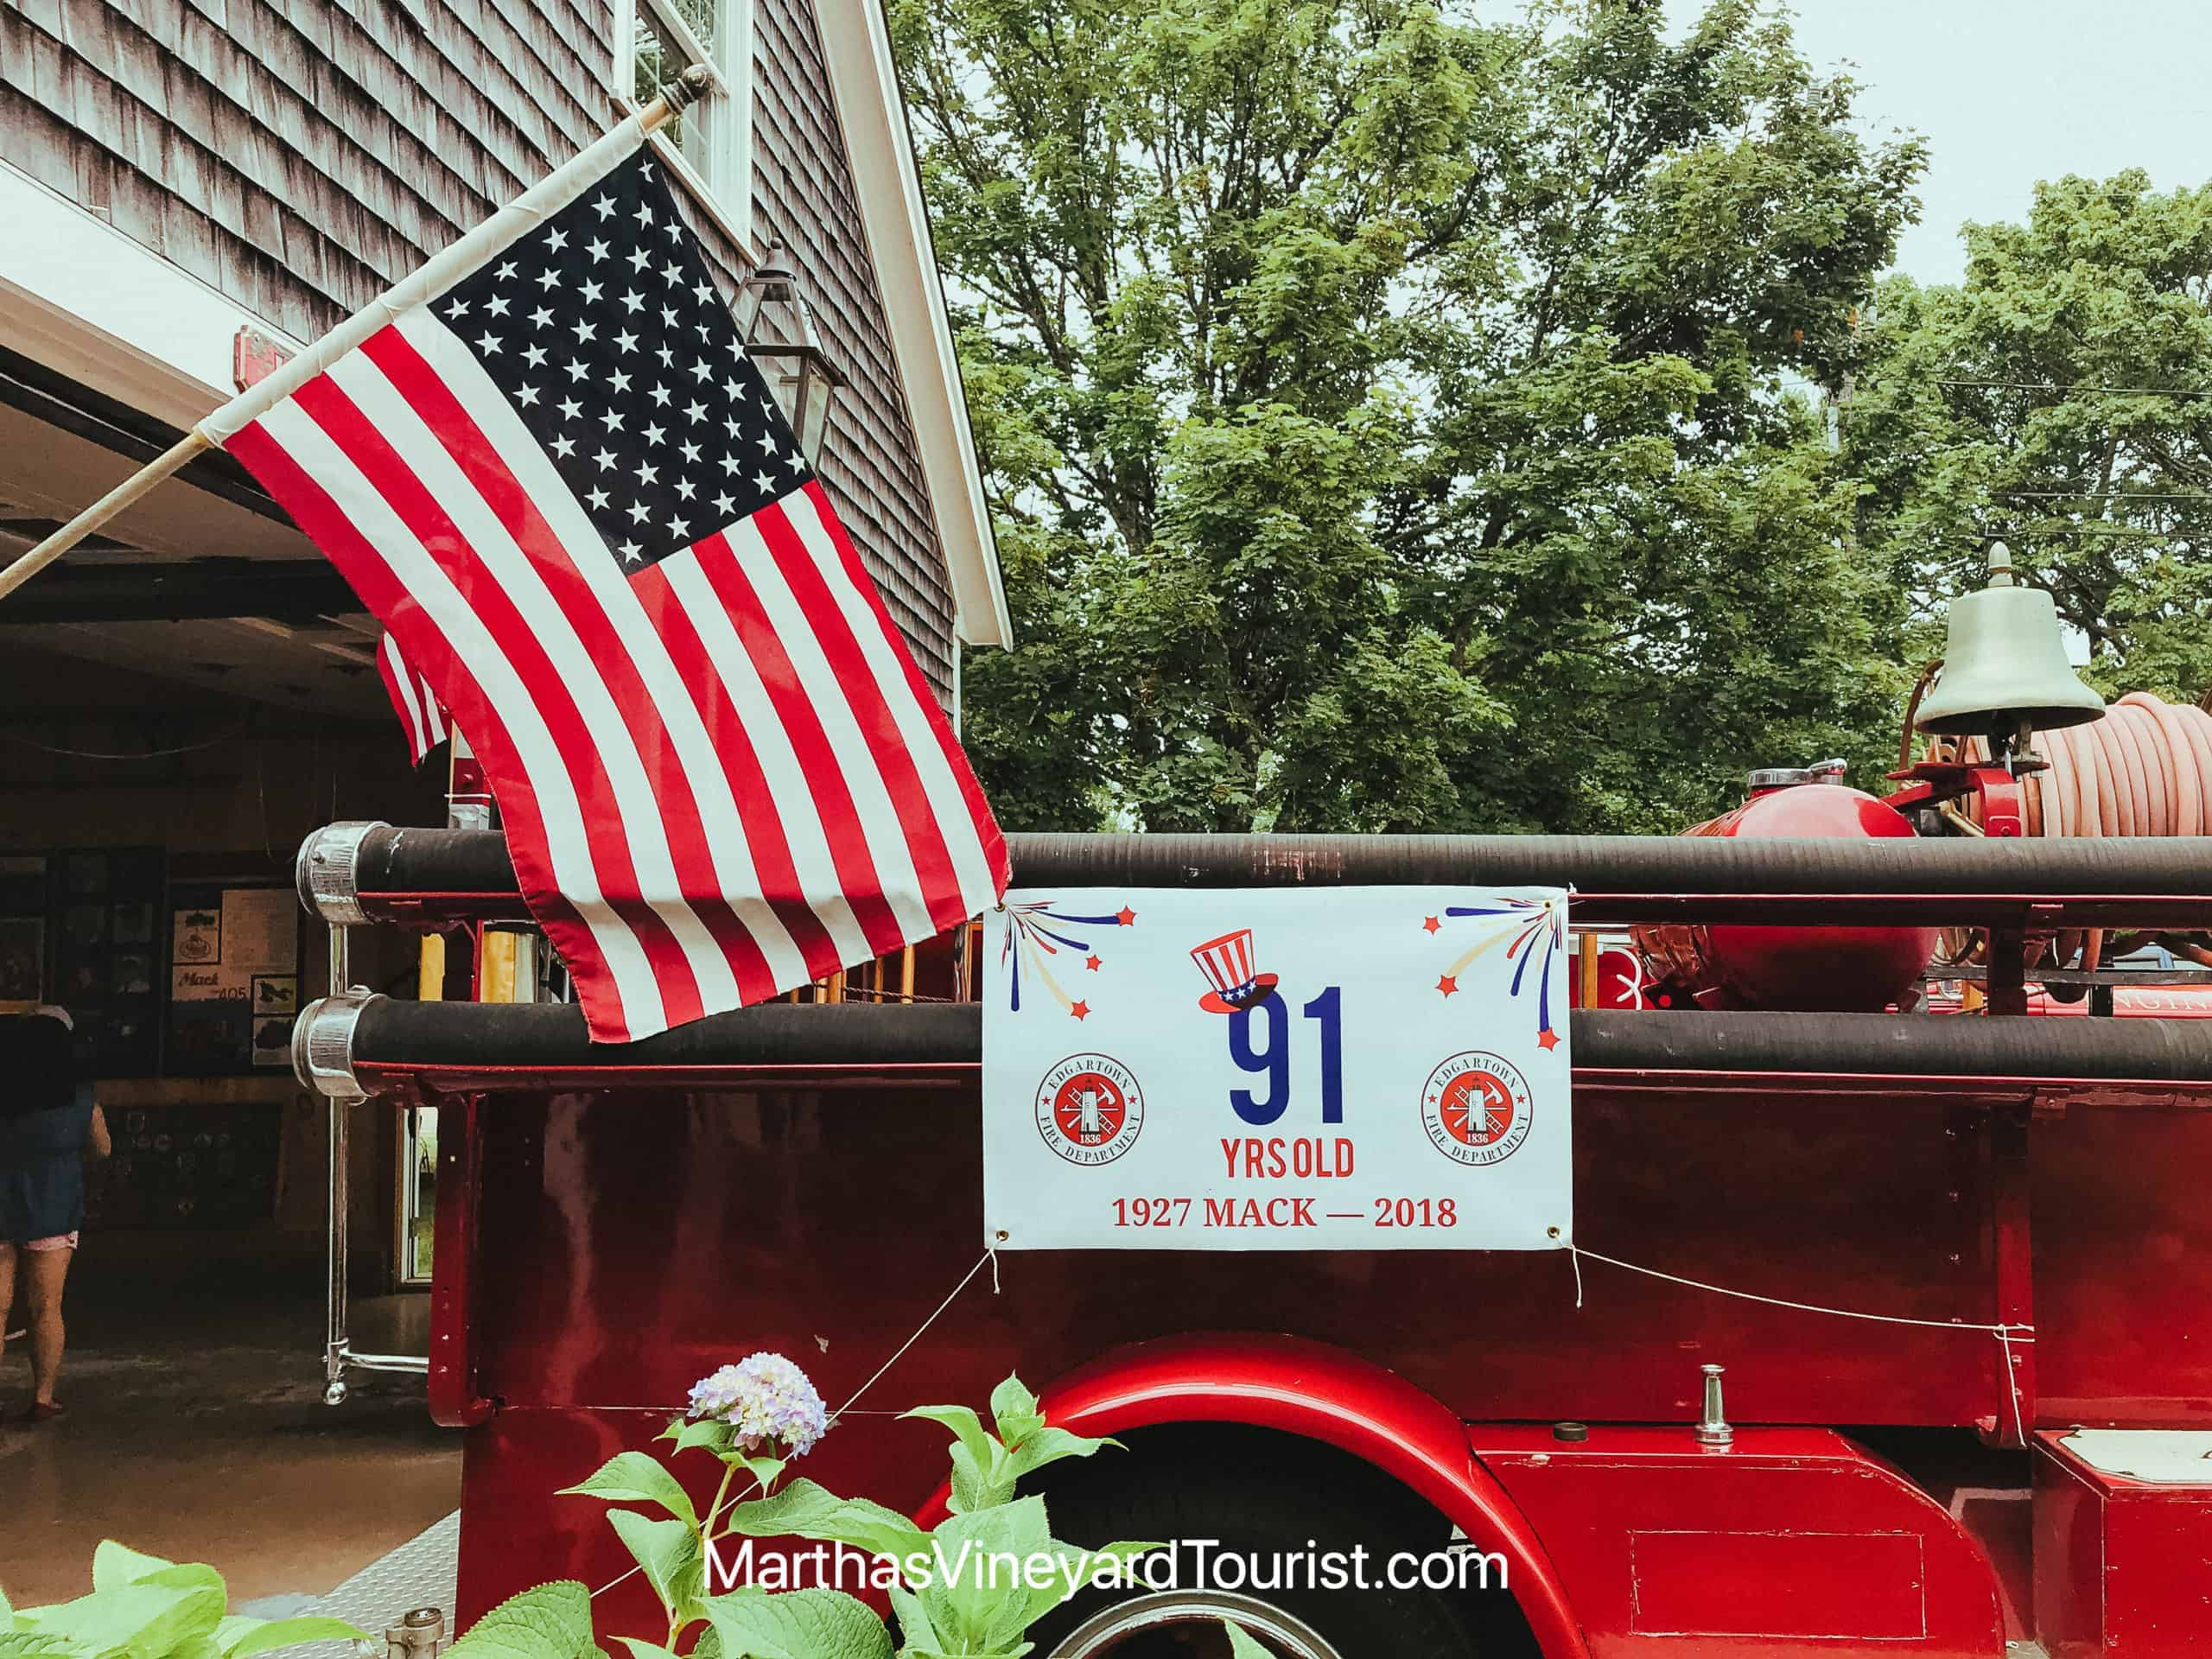 a vintage fire truck and an American flag in front of a grey shingle house